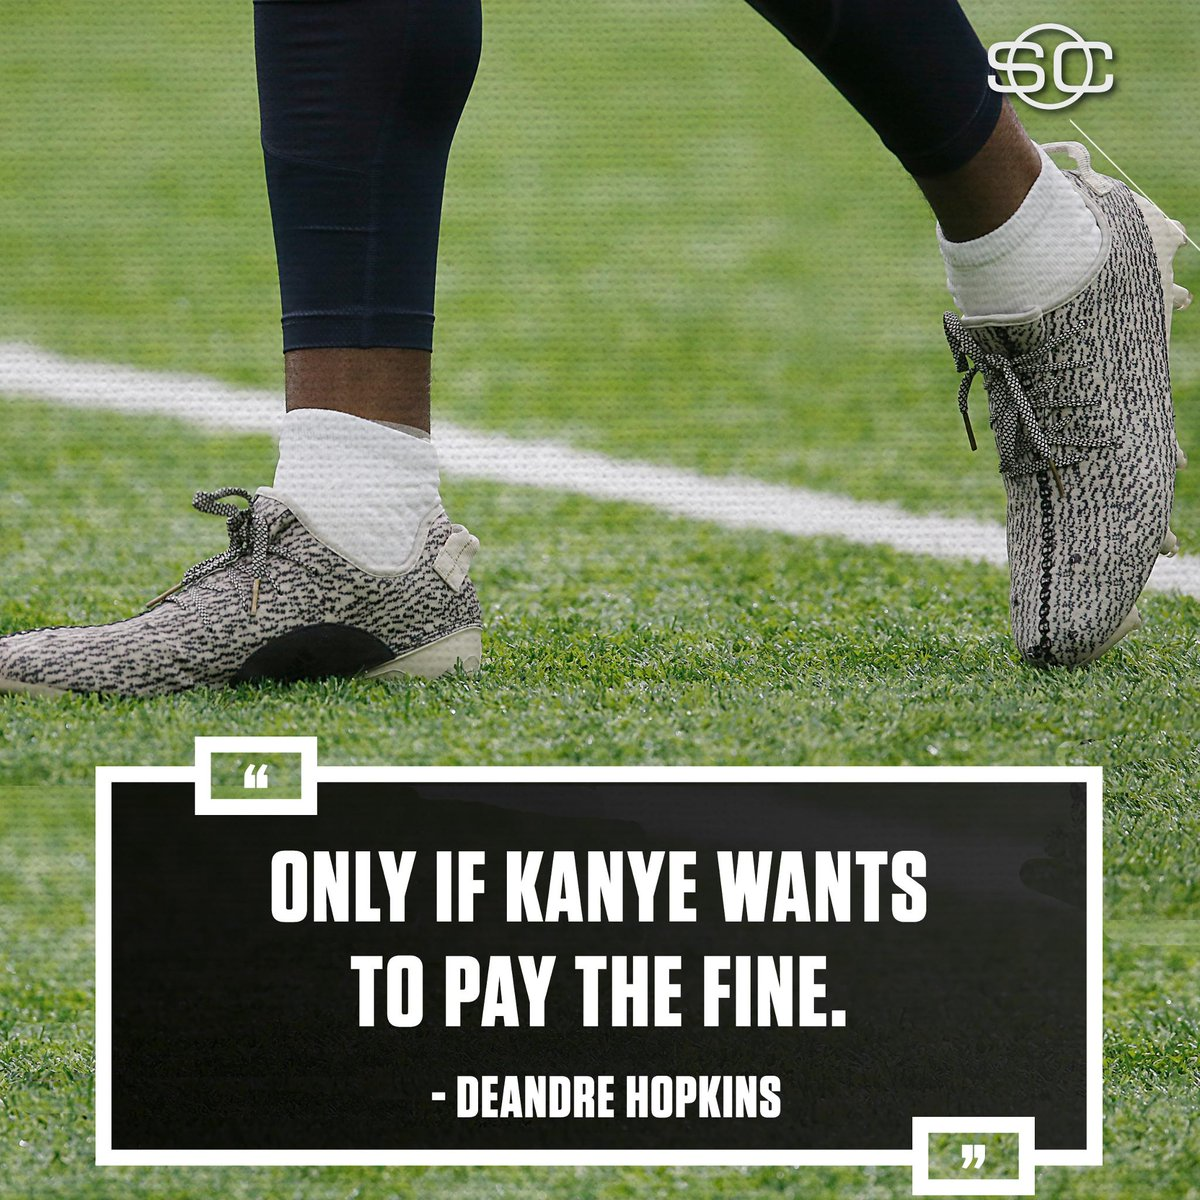 Texans' DeAndre Hopkins was fined $6,000 for wearing Yeezy cleats. His response to whether he'd wear them again = 🔥